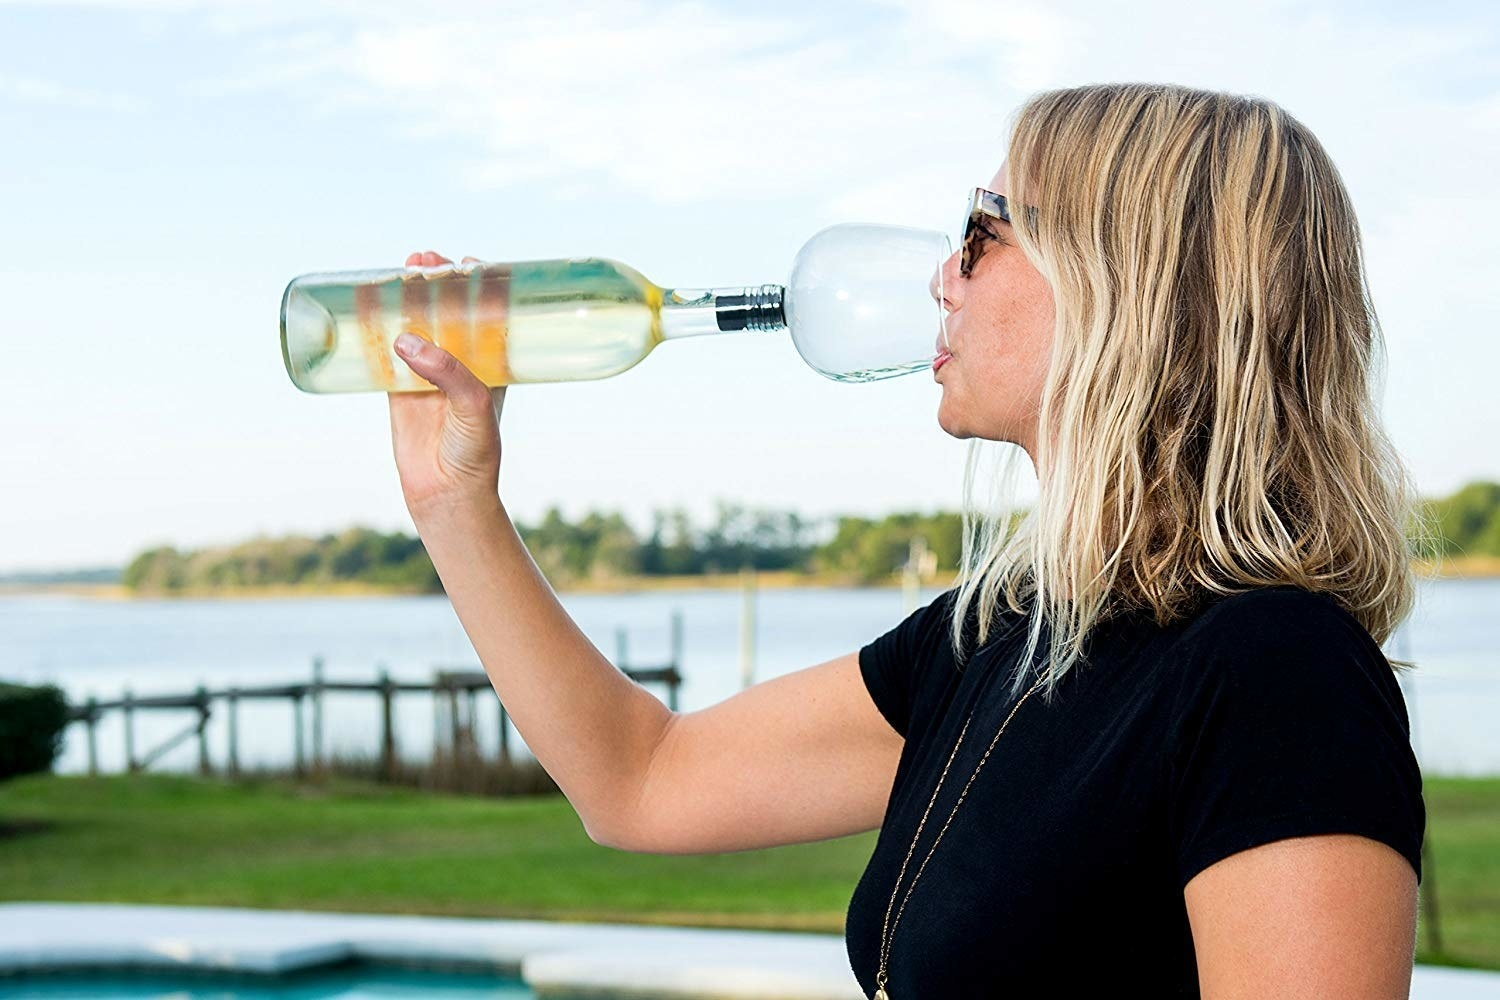 model drinking from the product, which is a wine glass that attaches straight to the top of the bottle